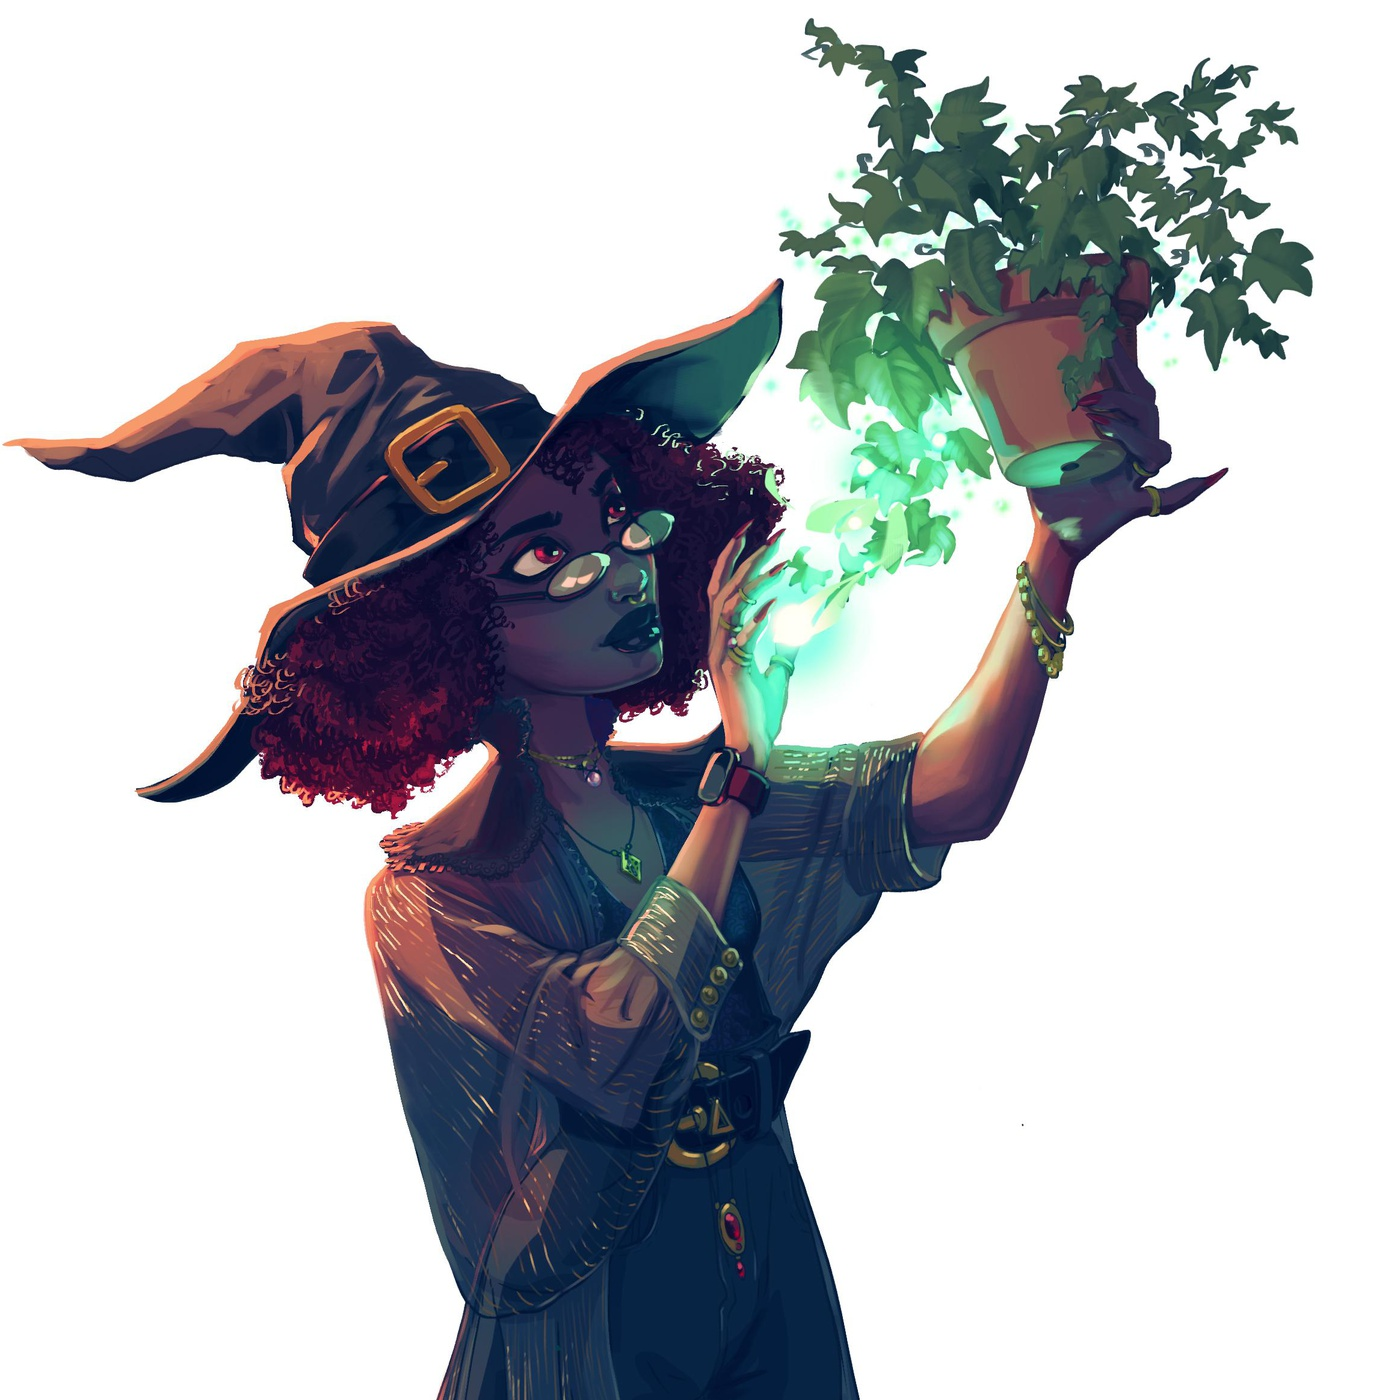 witch natural magical plant character design illustration 2d